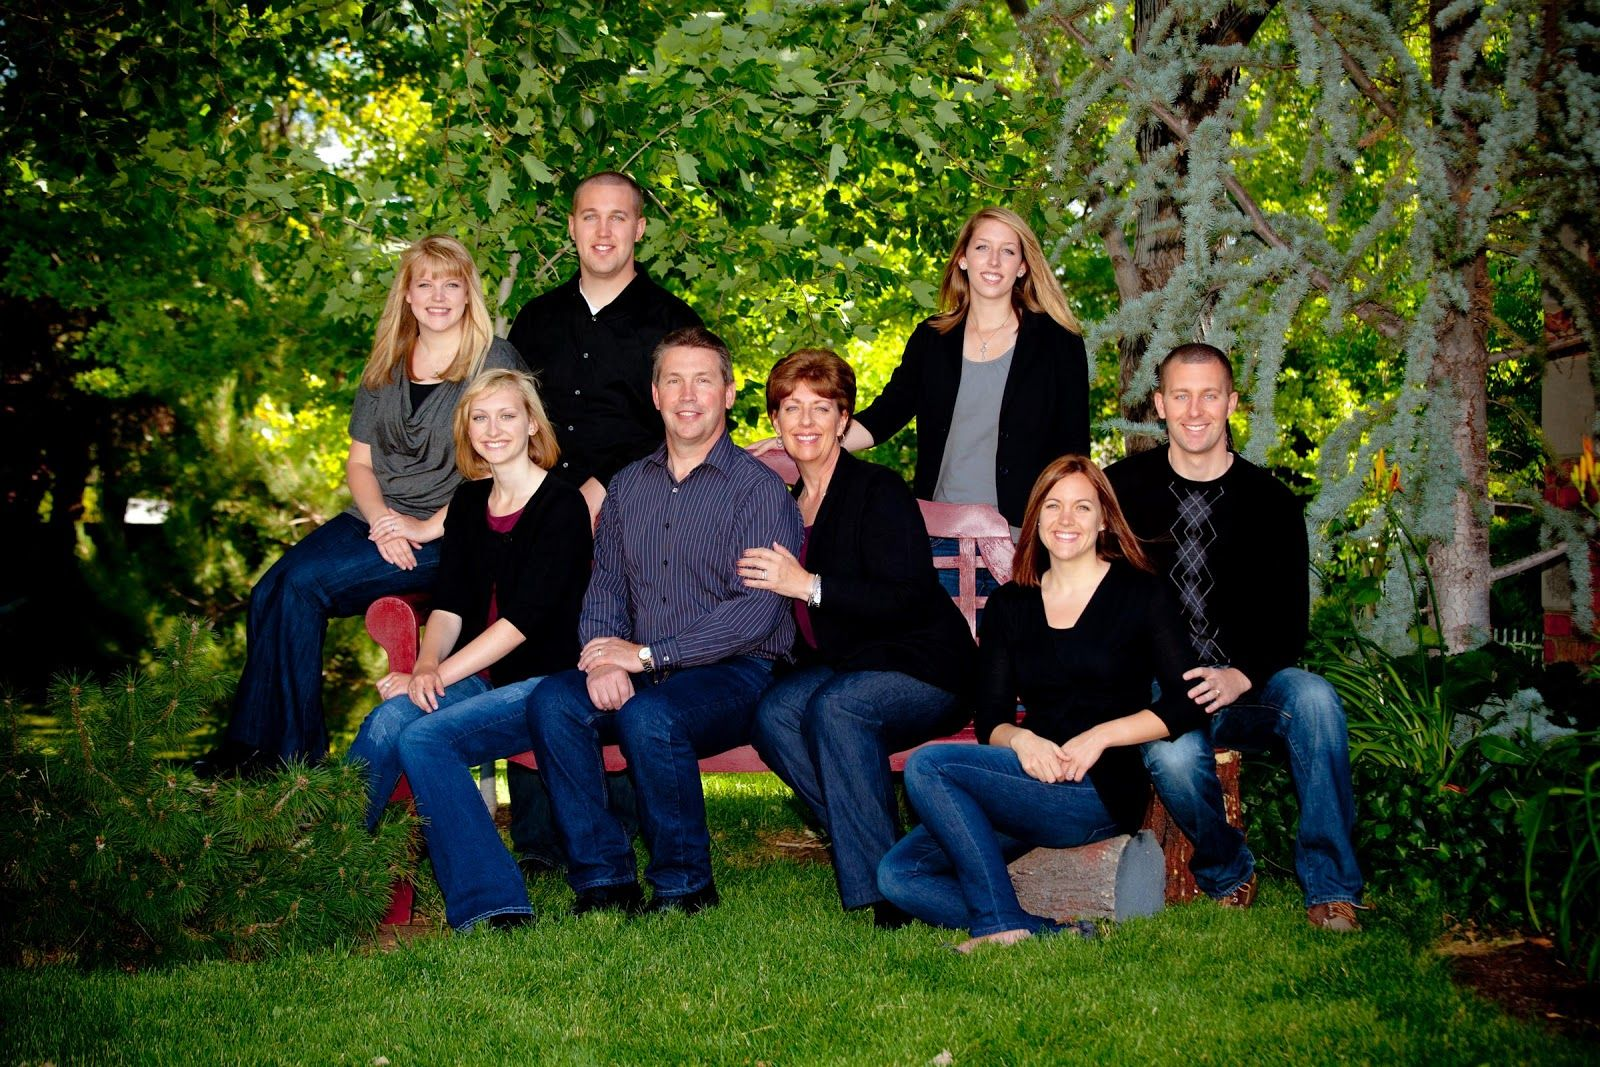 Family Photography Ideas Photography Outdoor Family Pictures